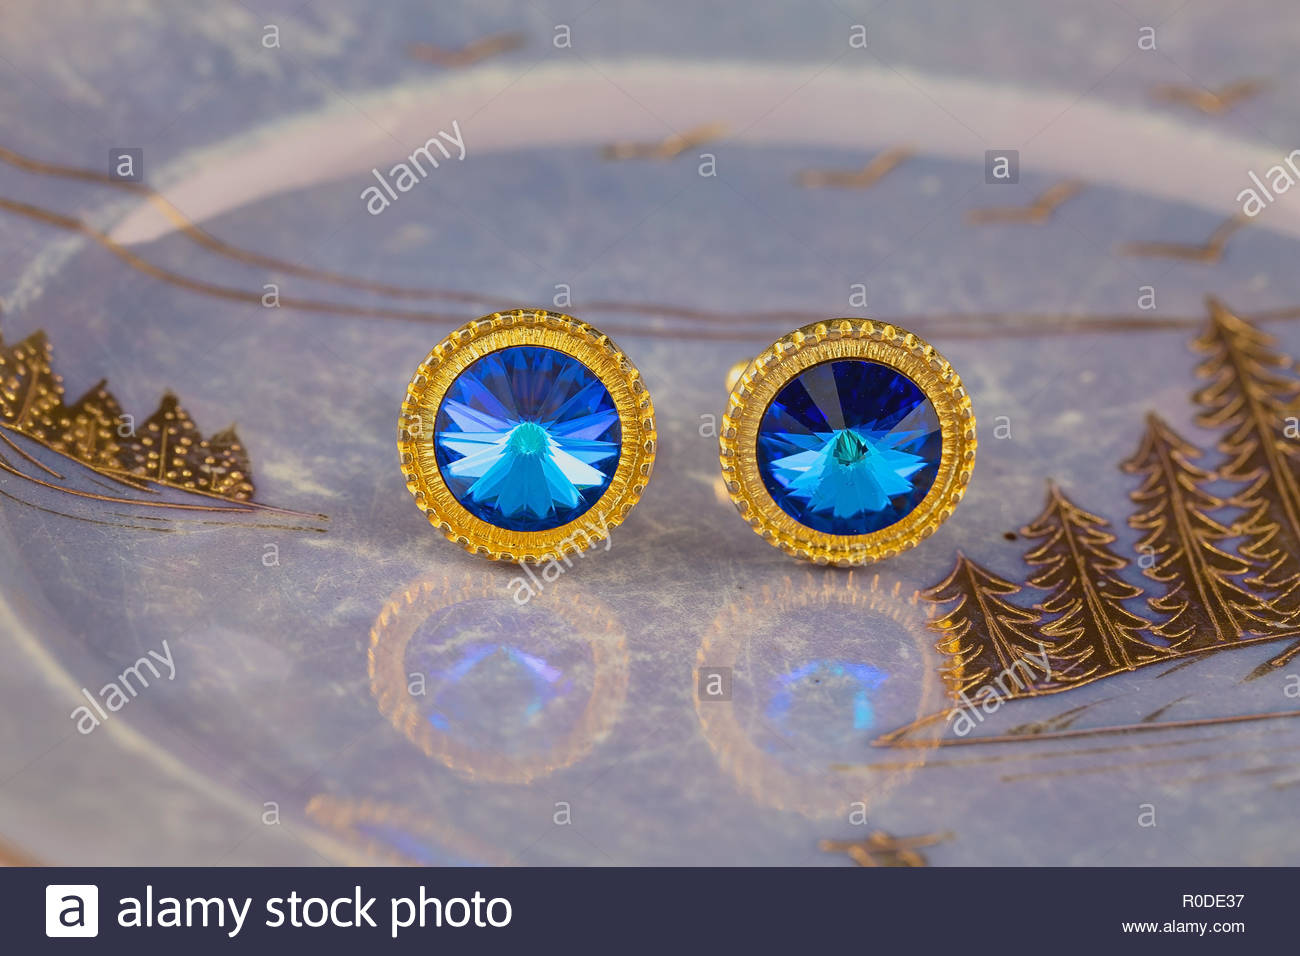 Vintage large gold blue stone cuff links on a lustrous plate - Stock Image